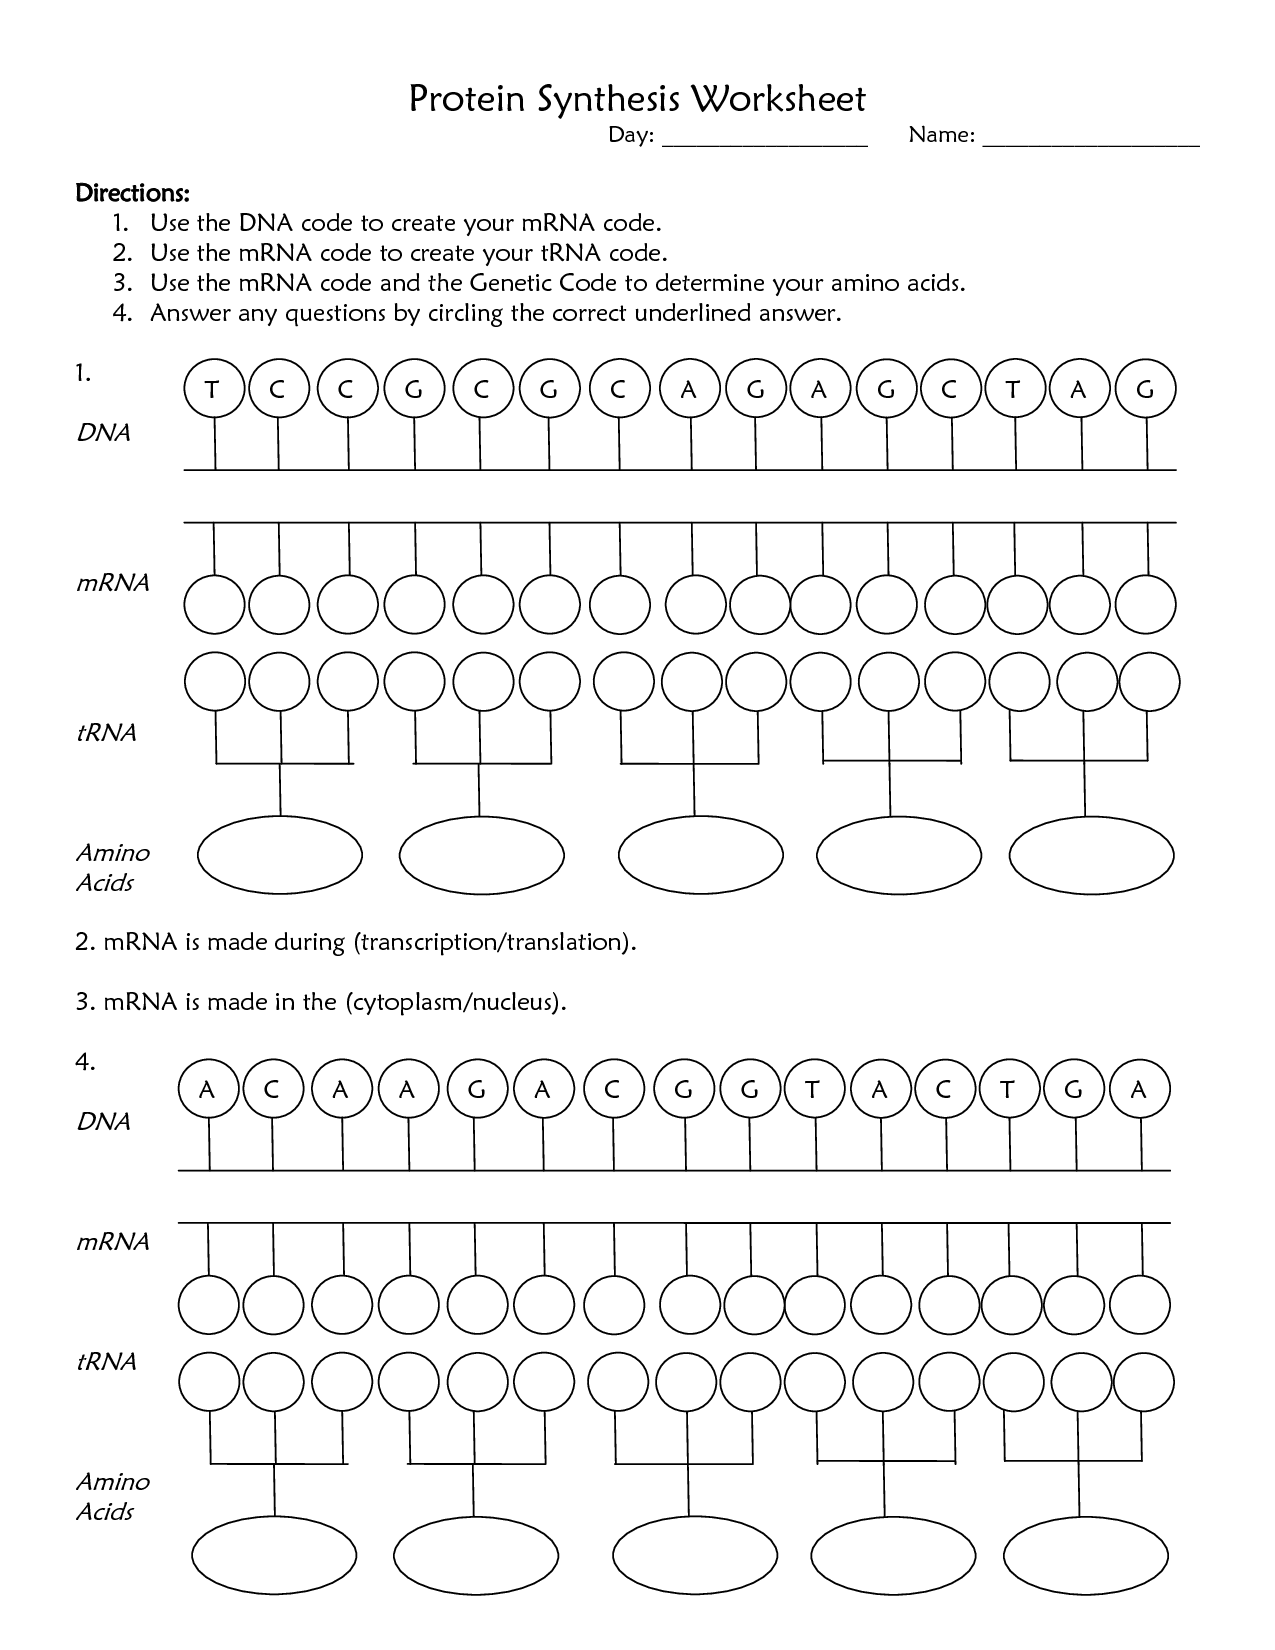 Protein Synthesis Worksheet Answer Key Biology Worksheet Transcription And Translation Protein Synthesis [ 1650 x 1275 Pixel ]